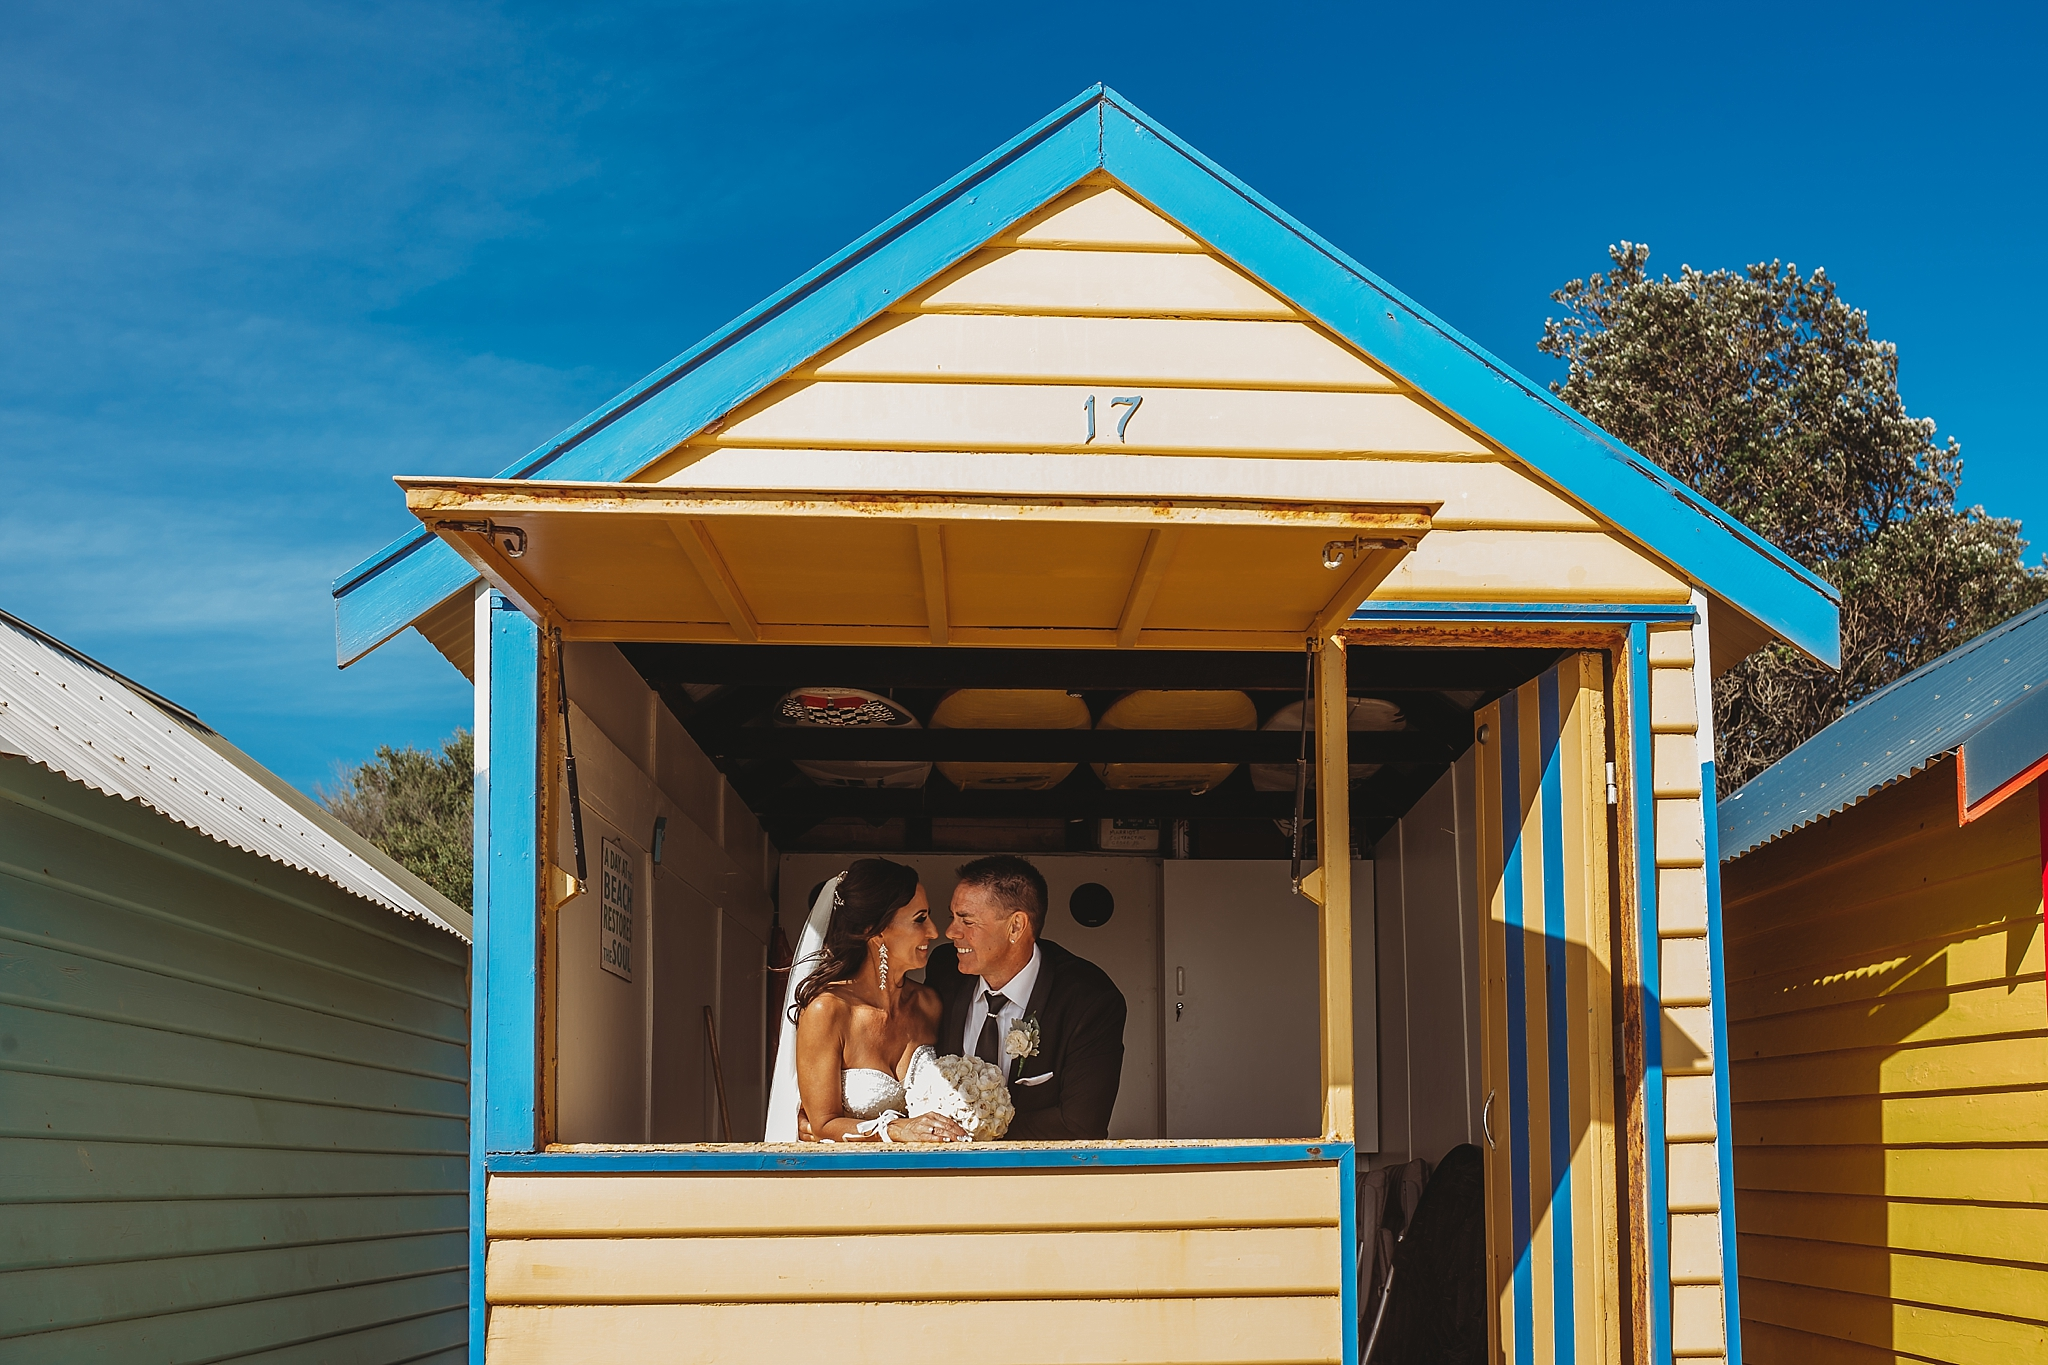 bride and groom in brighton beach box